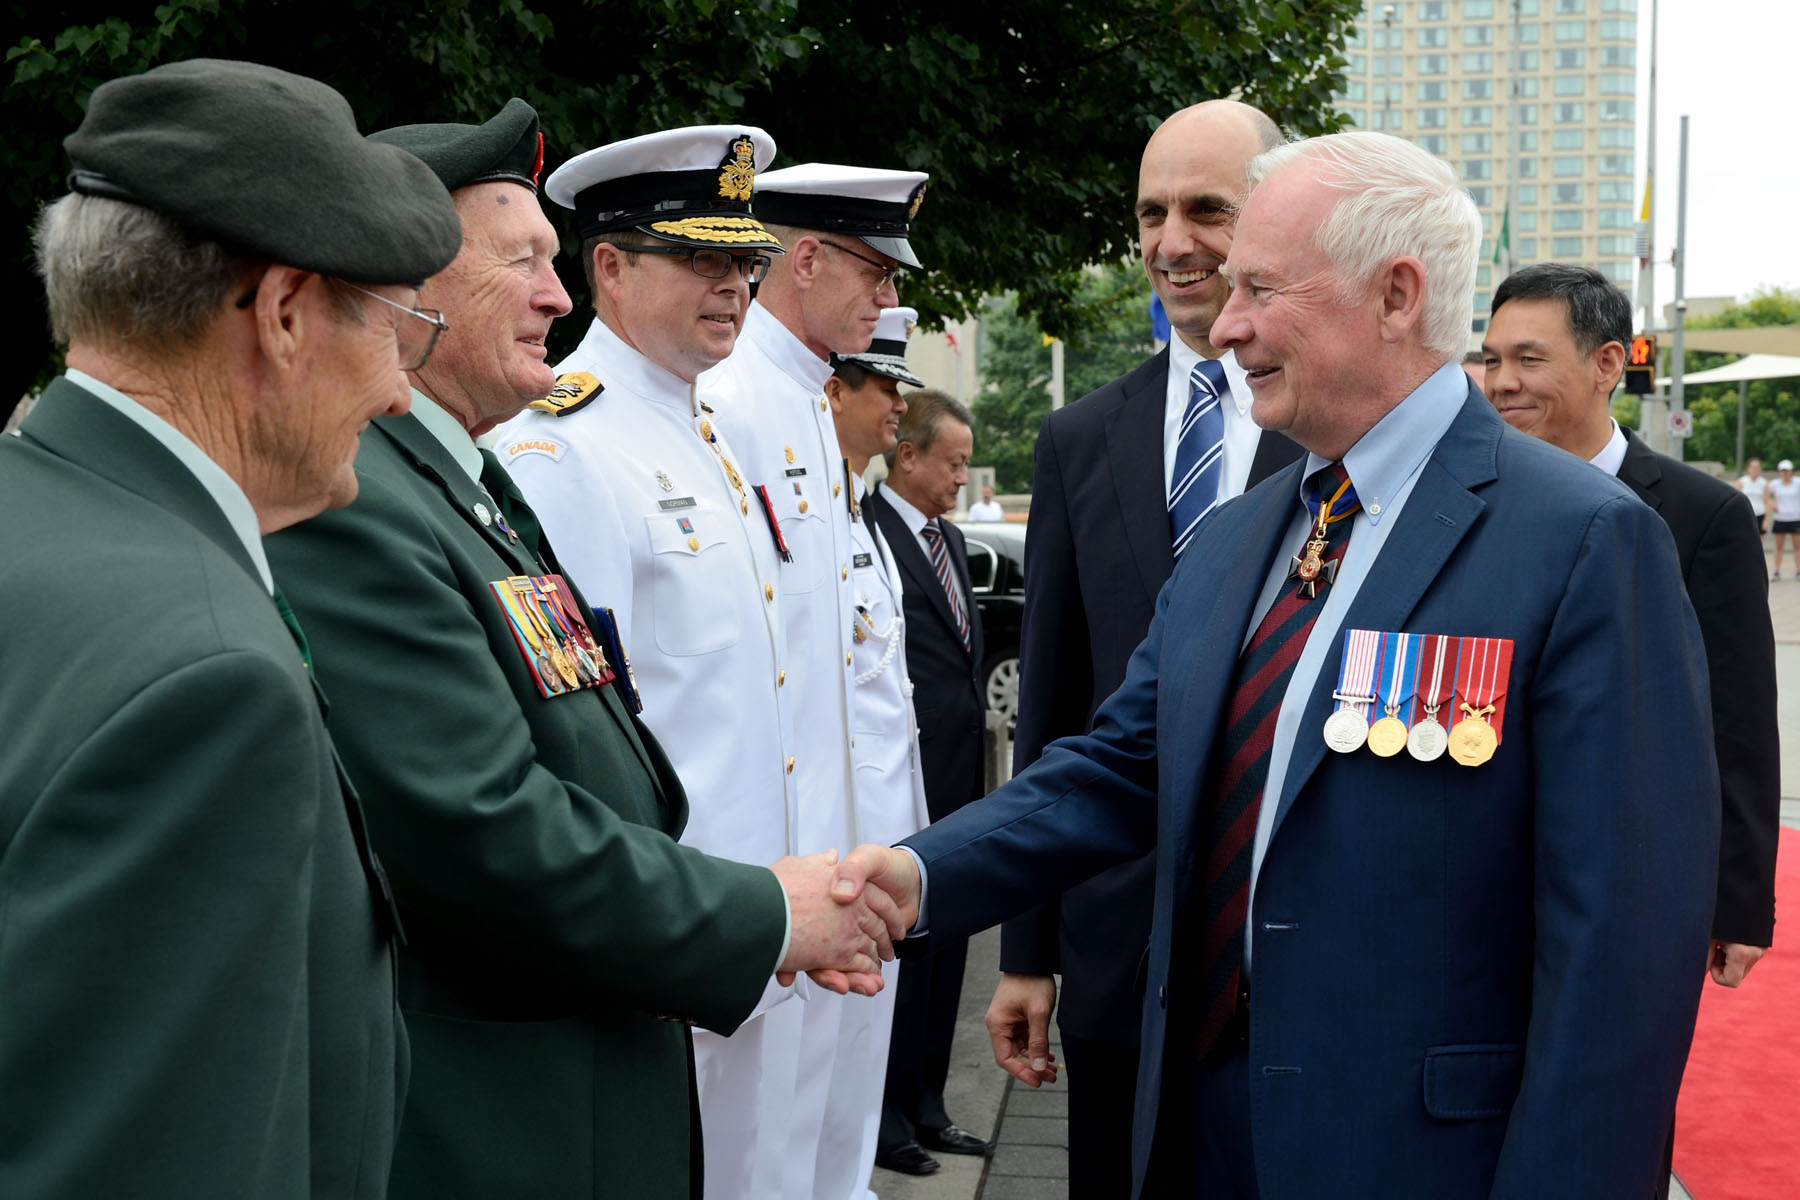 His Excellency the Right Honourable David Johnston, Governor General and Commander-in-Chief of Canada, took part in a wreath laying and ceremony of remembrance on the 60th anniversary of the Korean War Armistice, on June 23, 2013, at the National War Memorial, in Ottawa. His Excellency, joined by the Honourable Steven Blaney, Minister of Veterans Affairs and Minister for La Francophonie, thanked Canadian veterans for their service to our country.